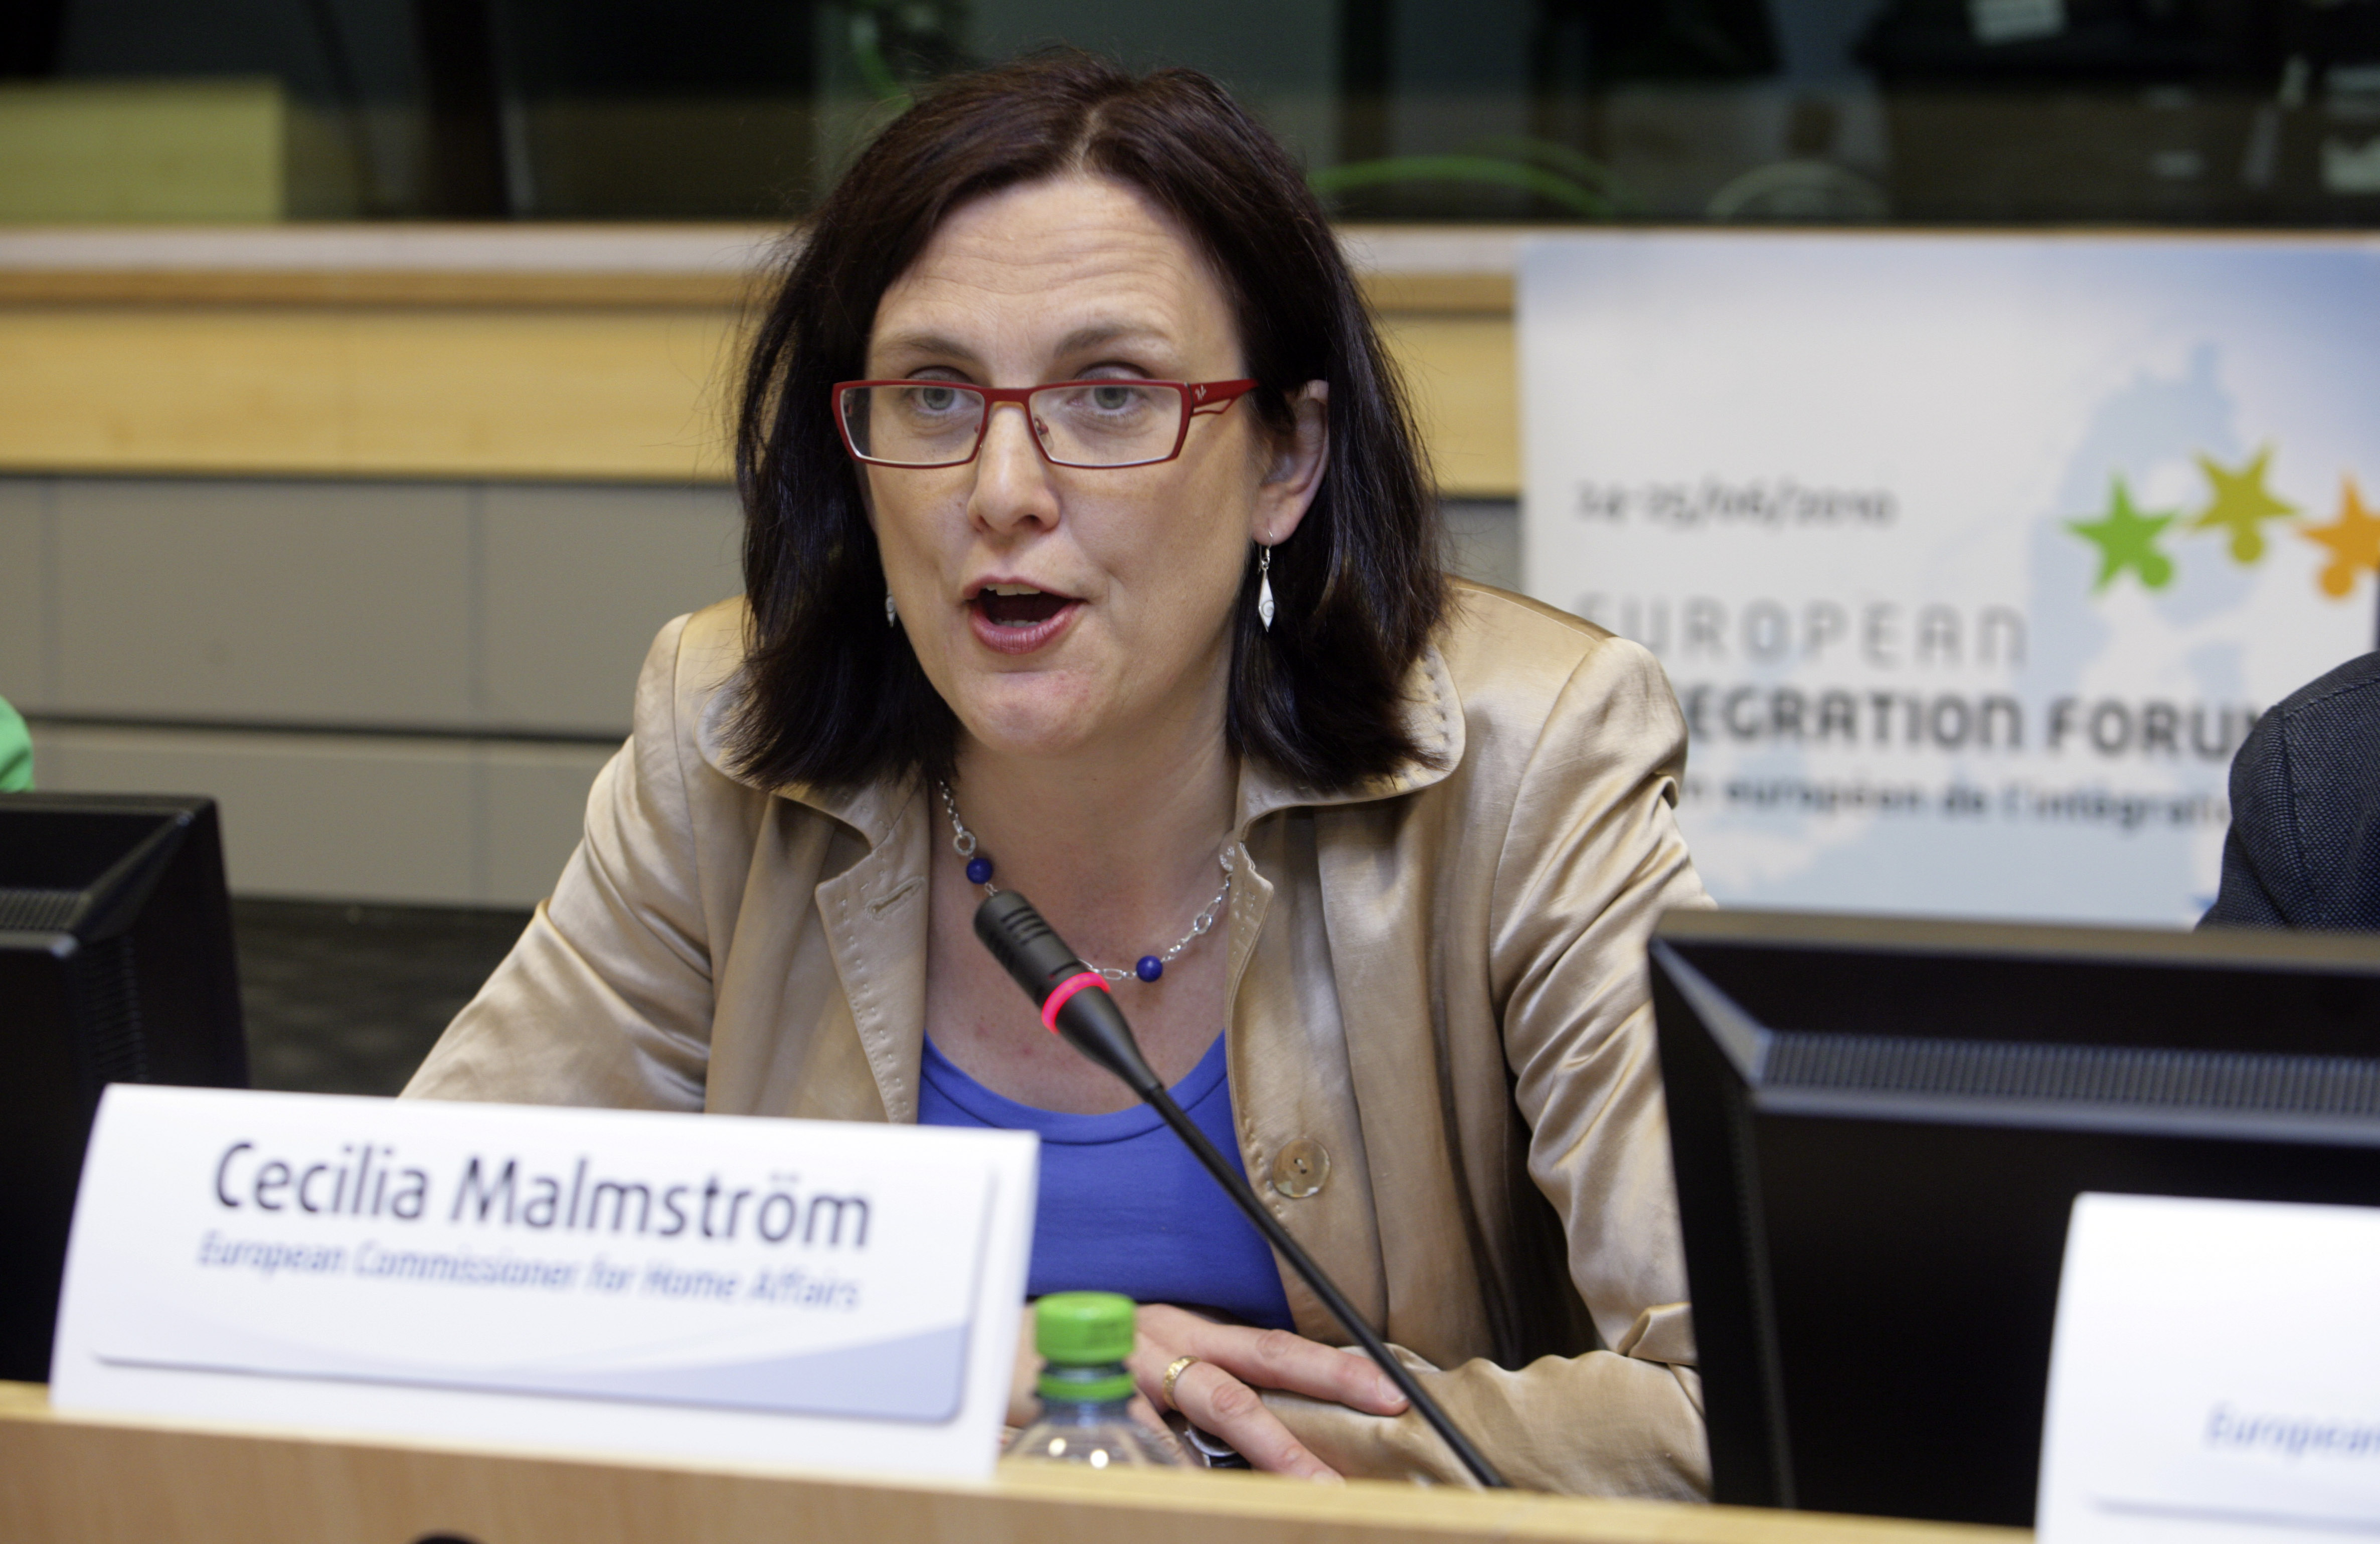 03. Cecilia Malmström, European Commissioner for Home Affairs, giving her opening speech